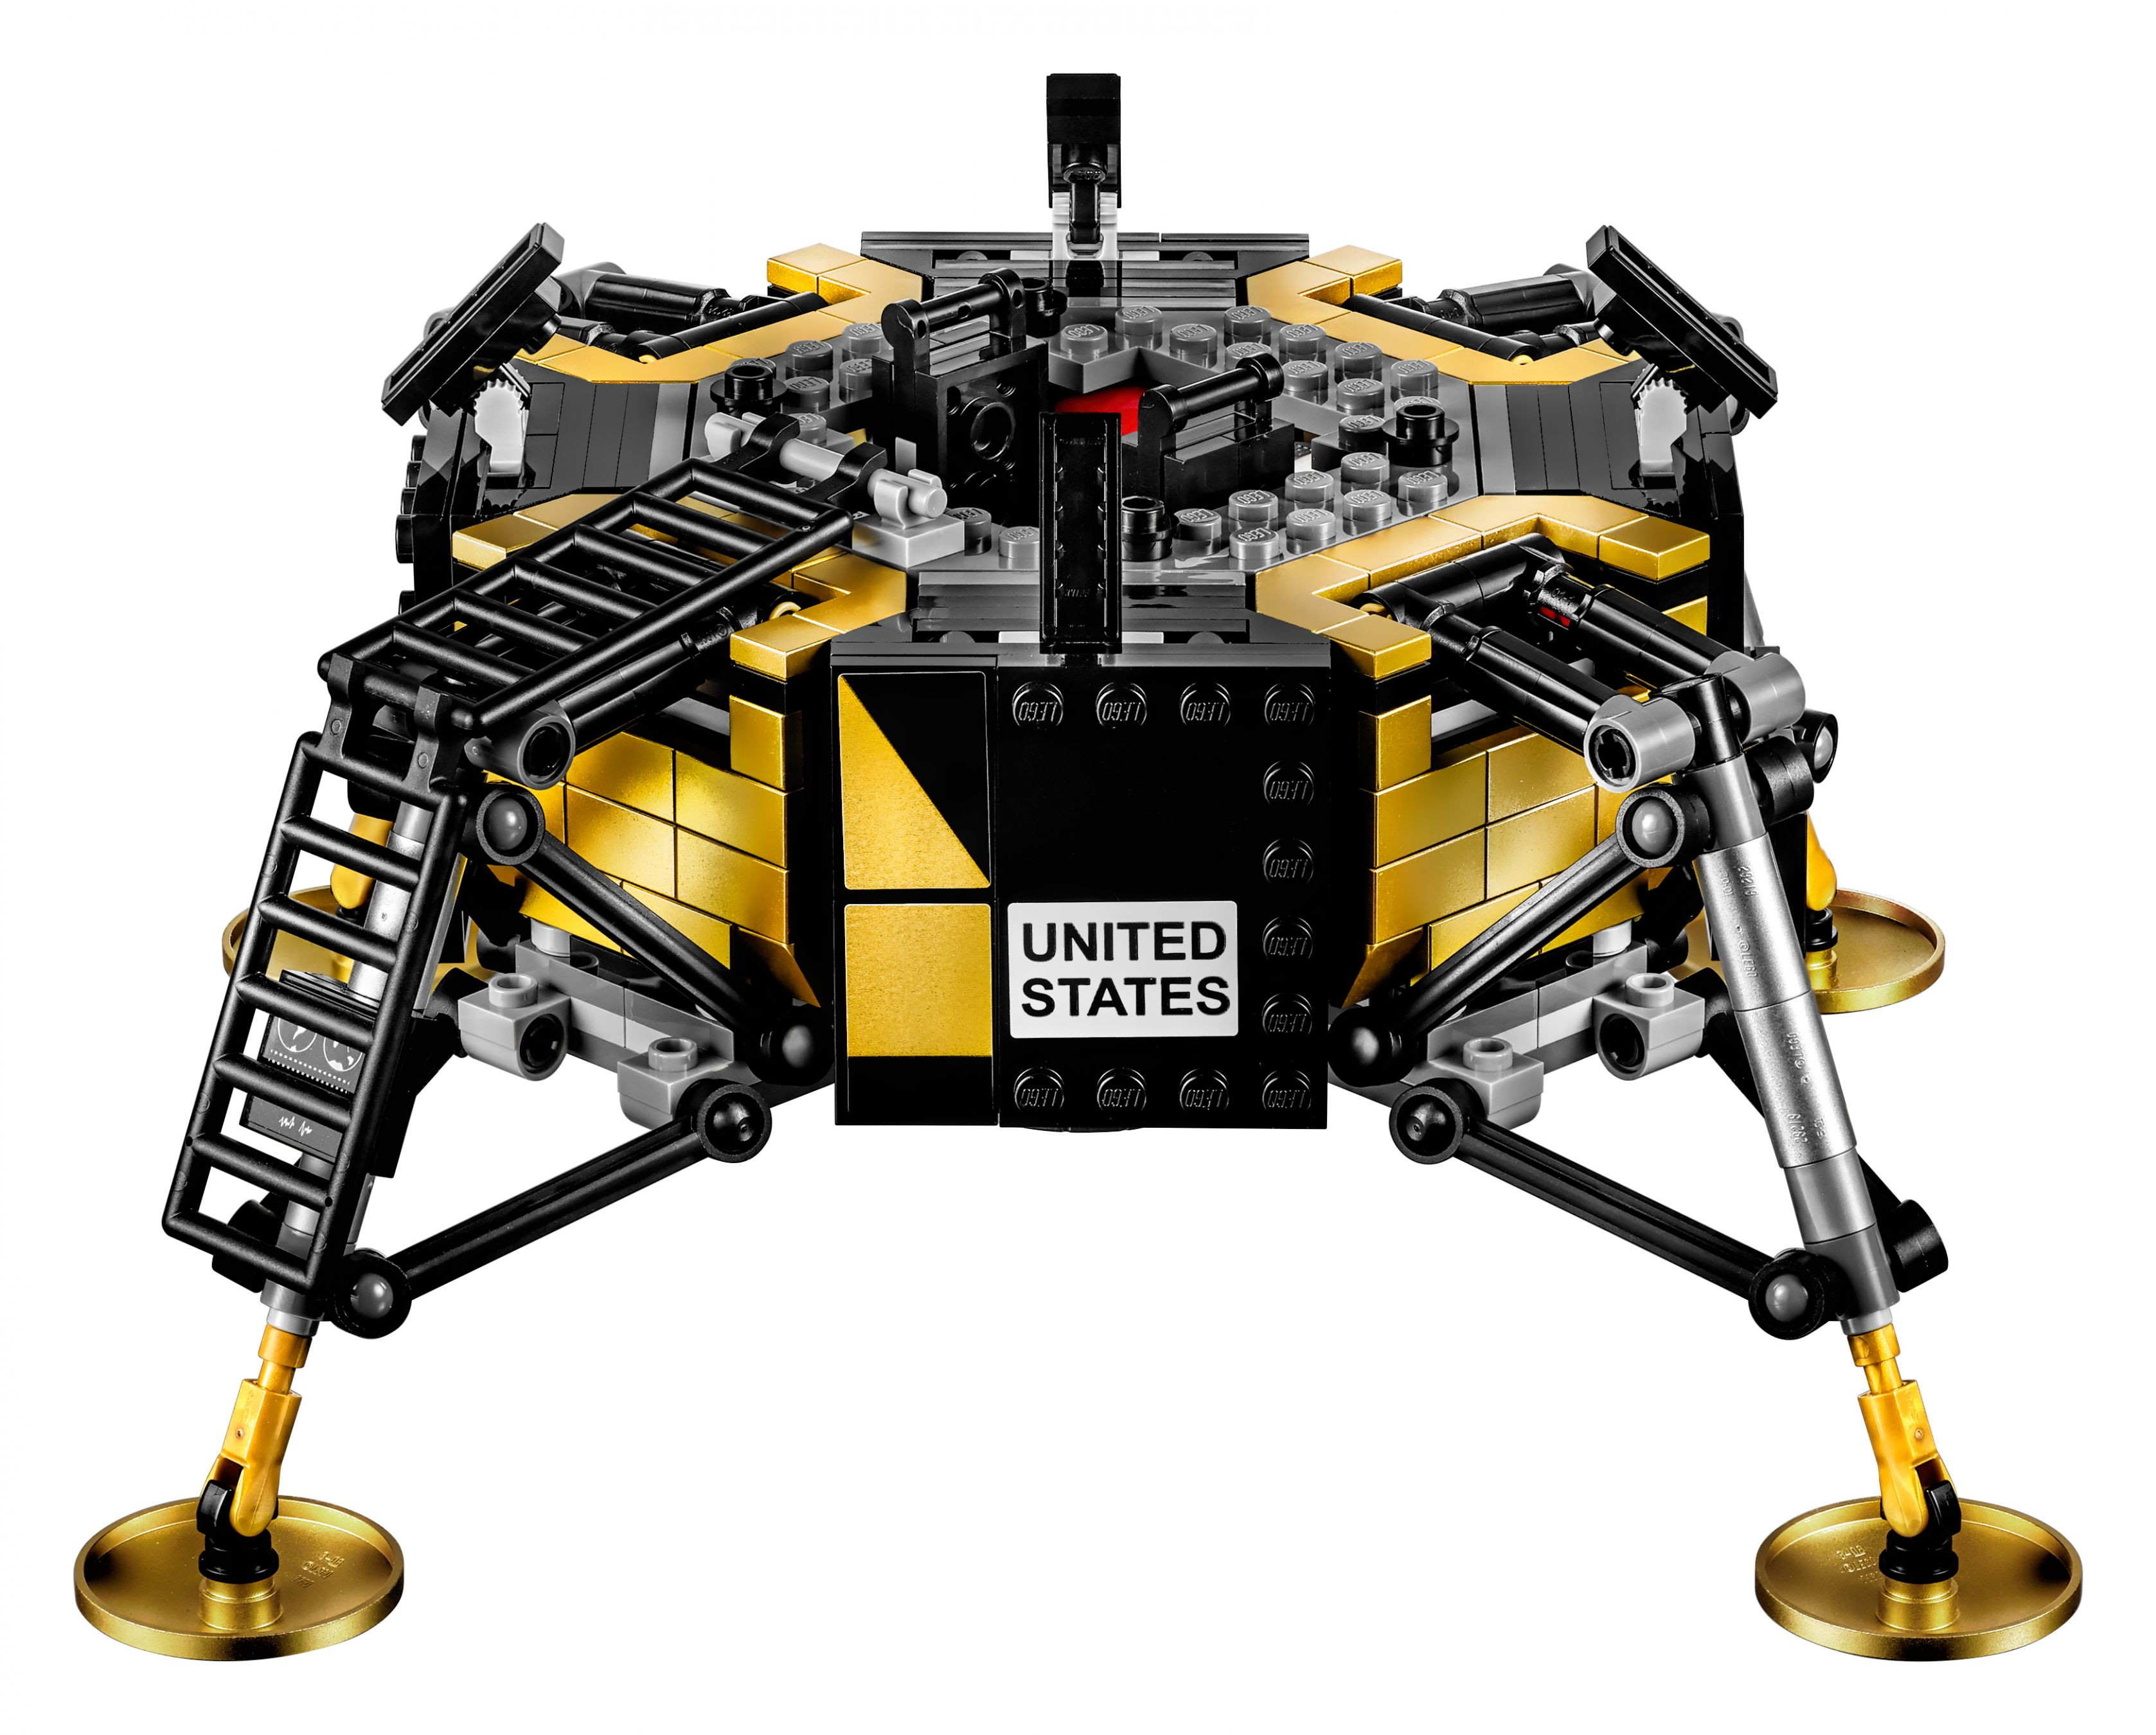 LEGO Advanced Models 10266 NASA Apollo 11 Mondlandefähre LEGO_10266_alt7.jpg